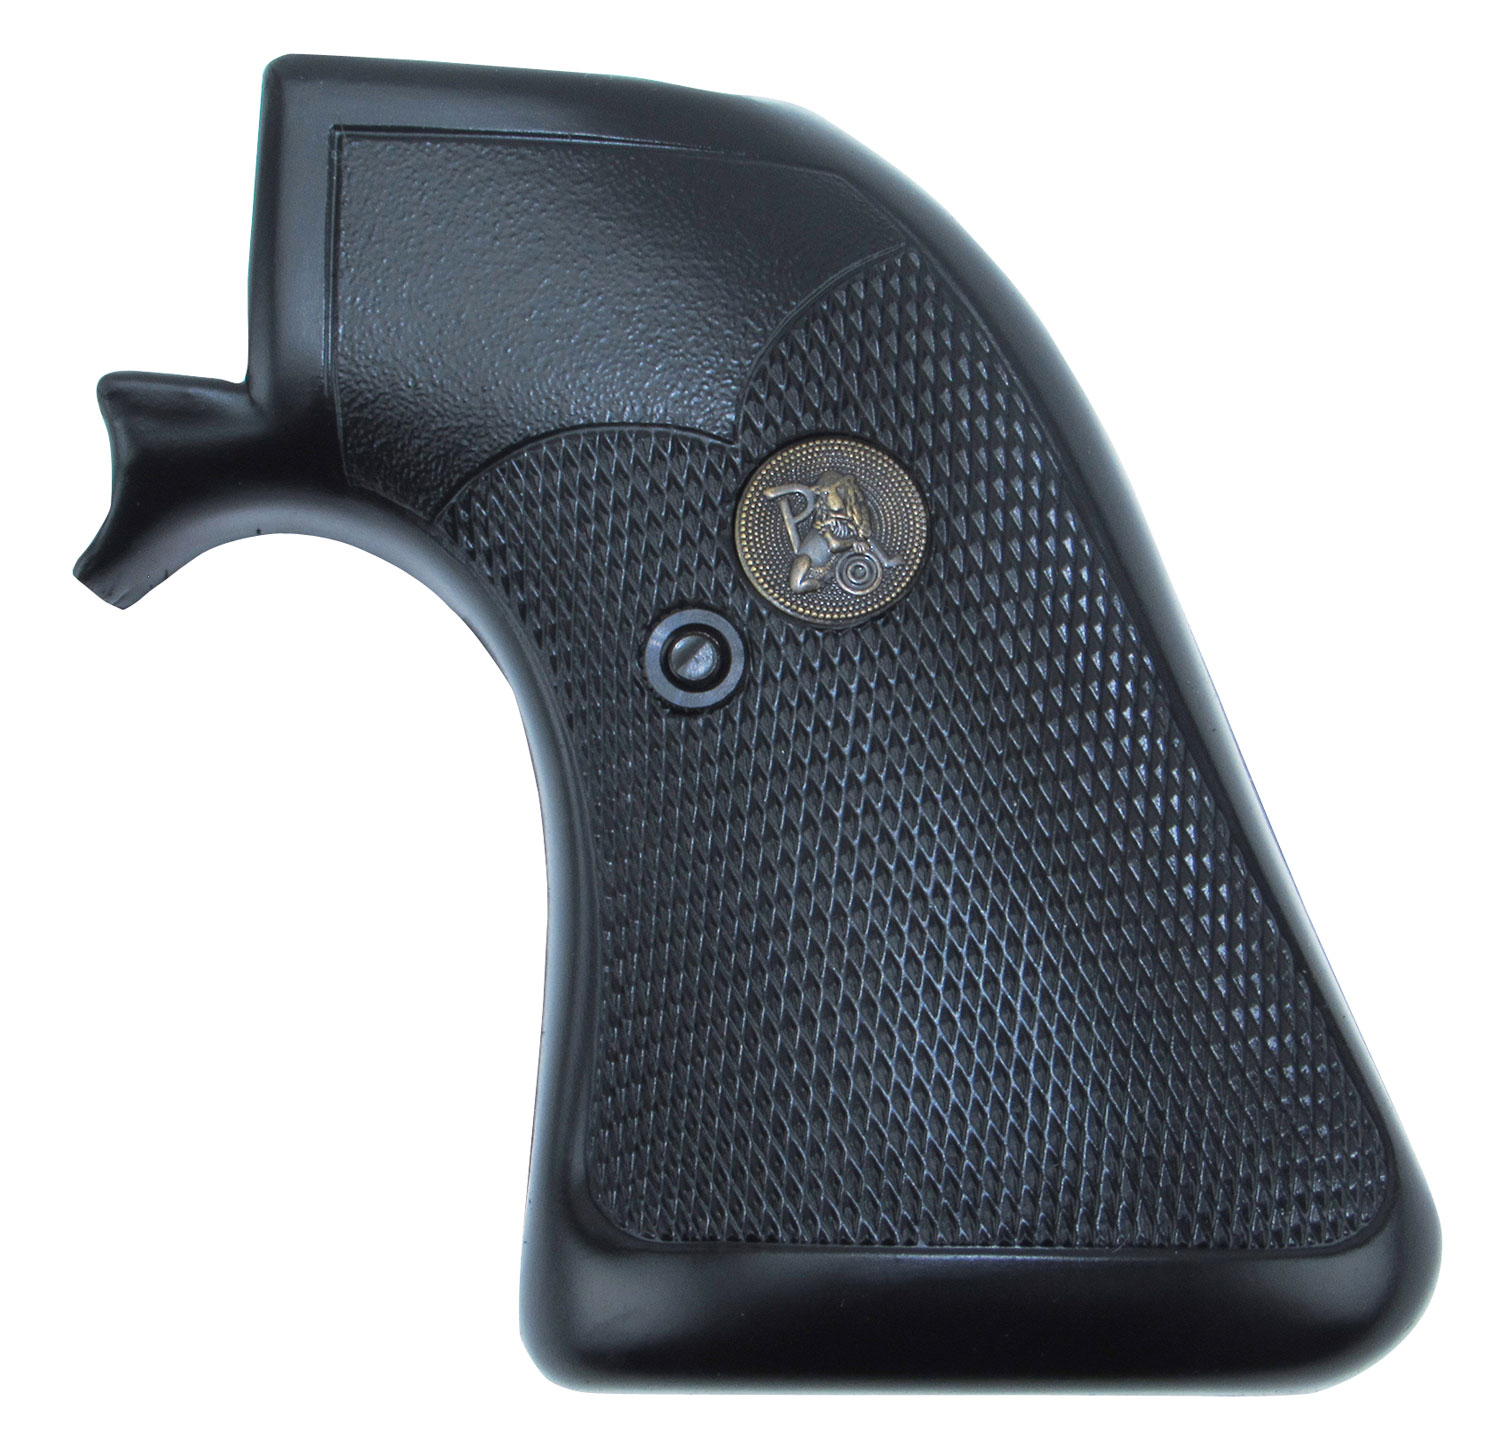 Pachmayr 03137 Presentation Grip Ruger Blackhawk/Single Six Checkered Blk Rubber